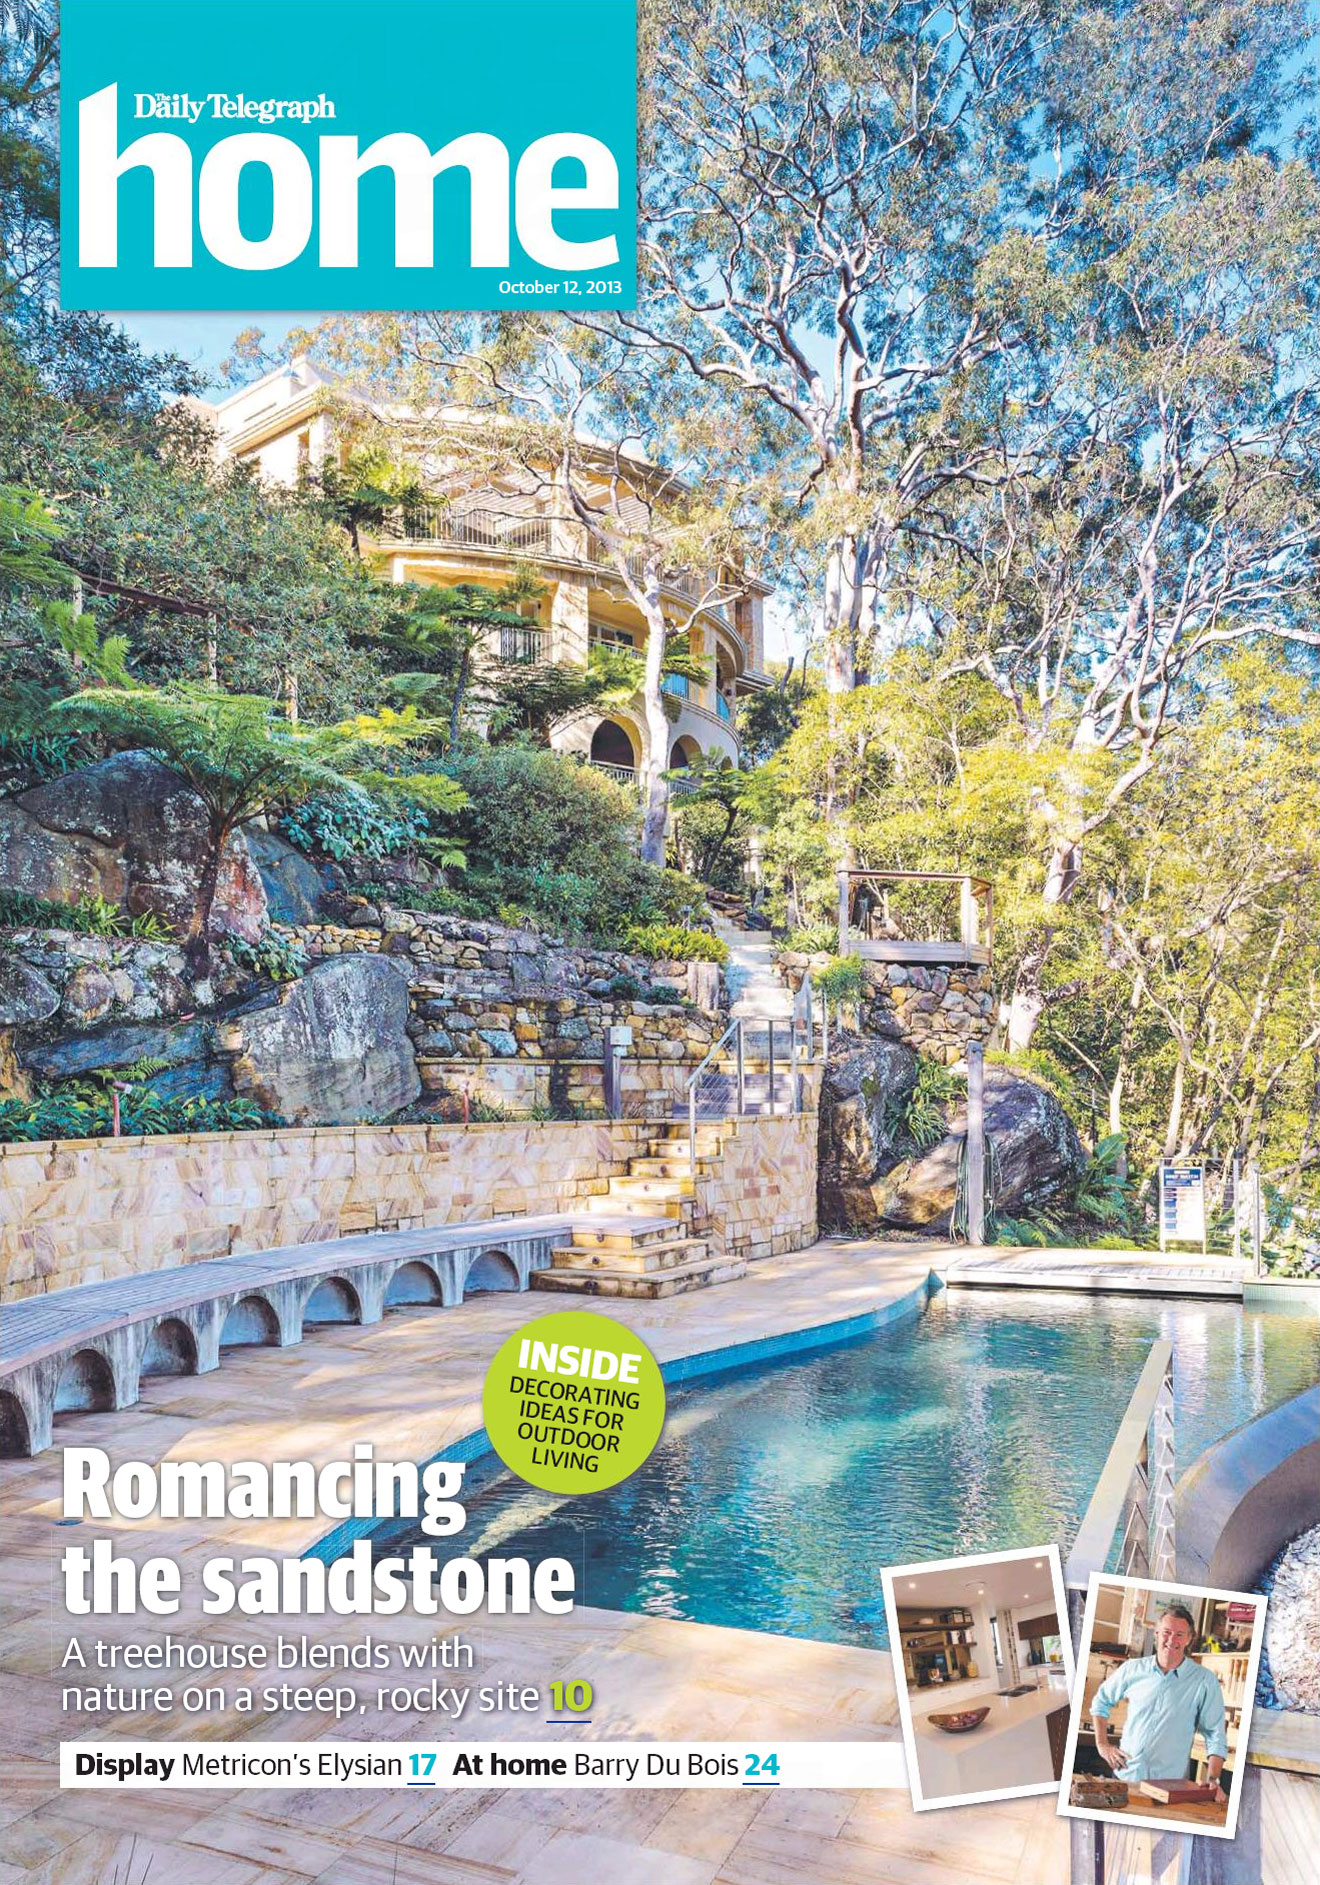 Daily Telegraph Home Magazine cover – Romancing the sandstone